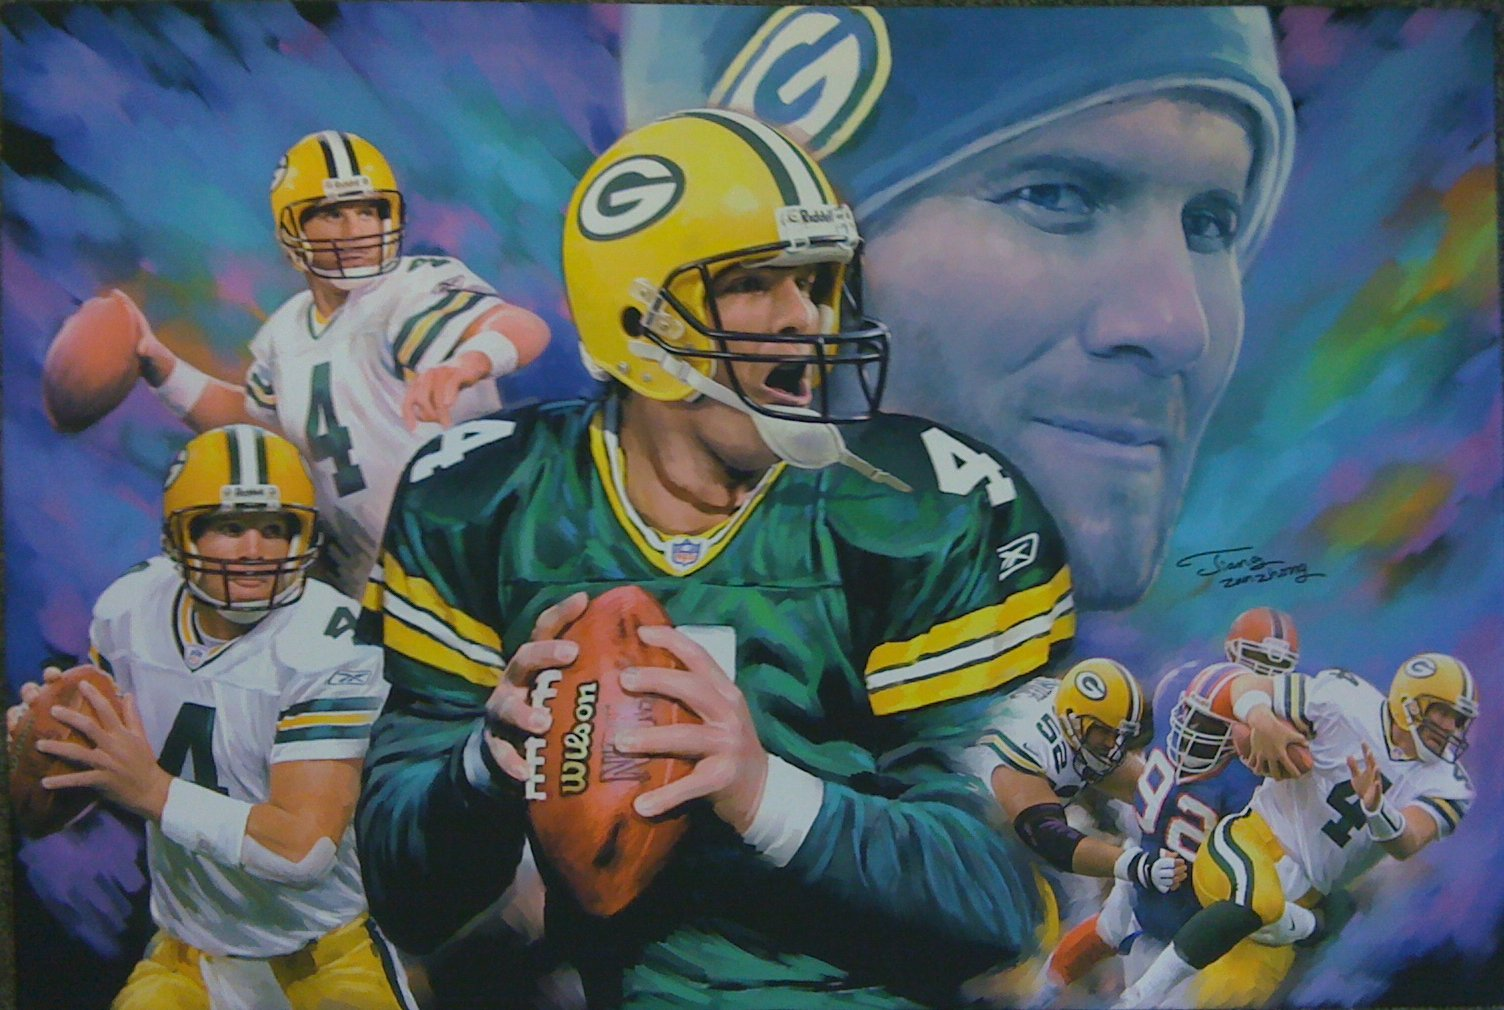 Brett Favre says he could still play QB in the NFL